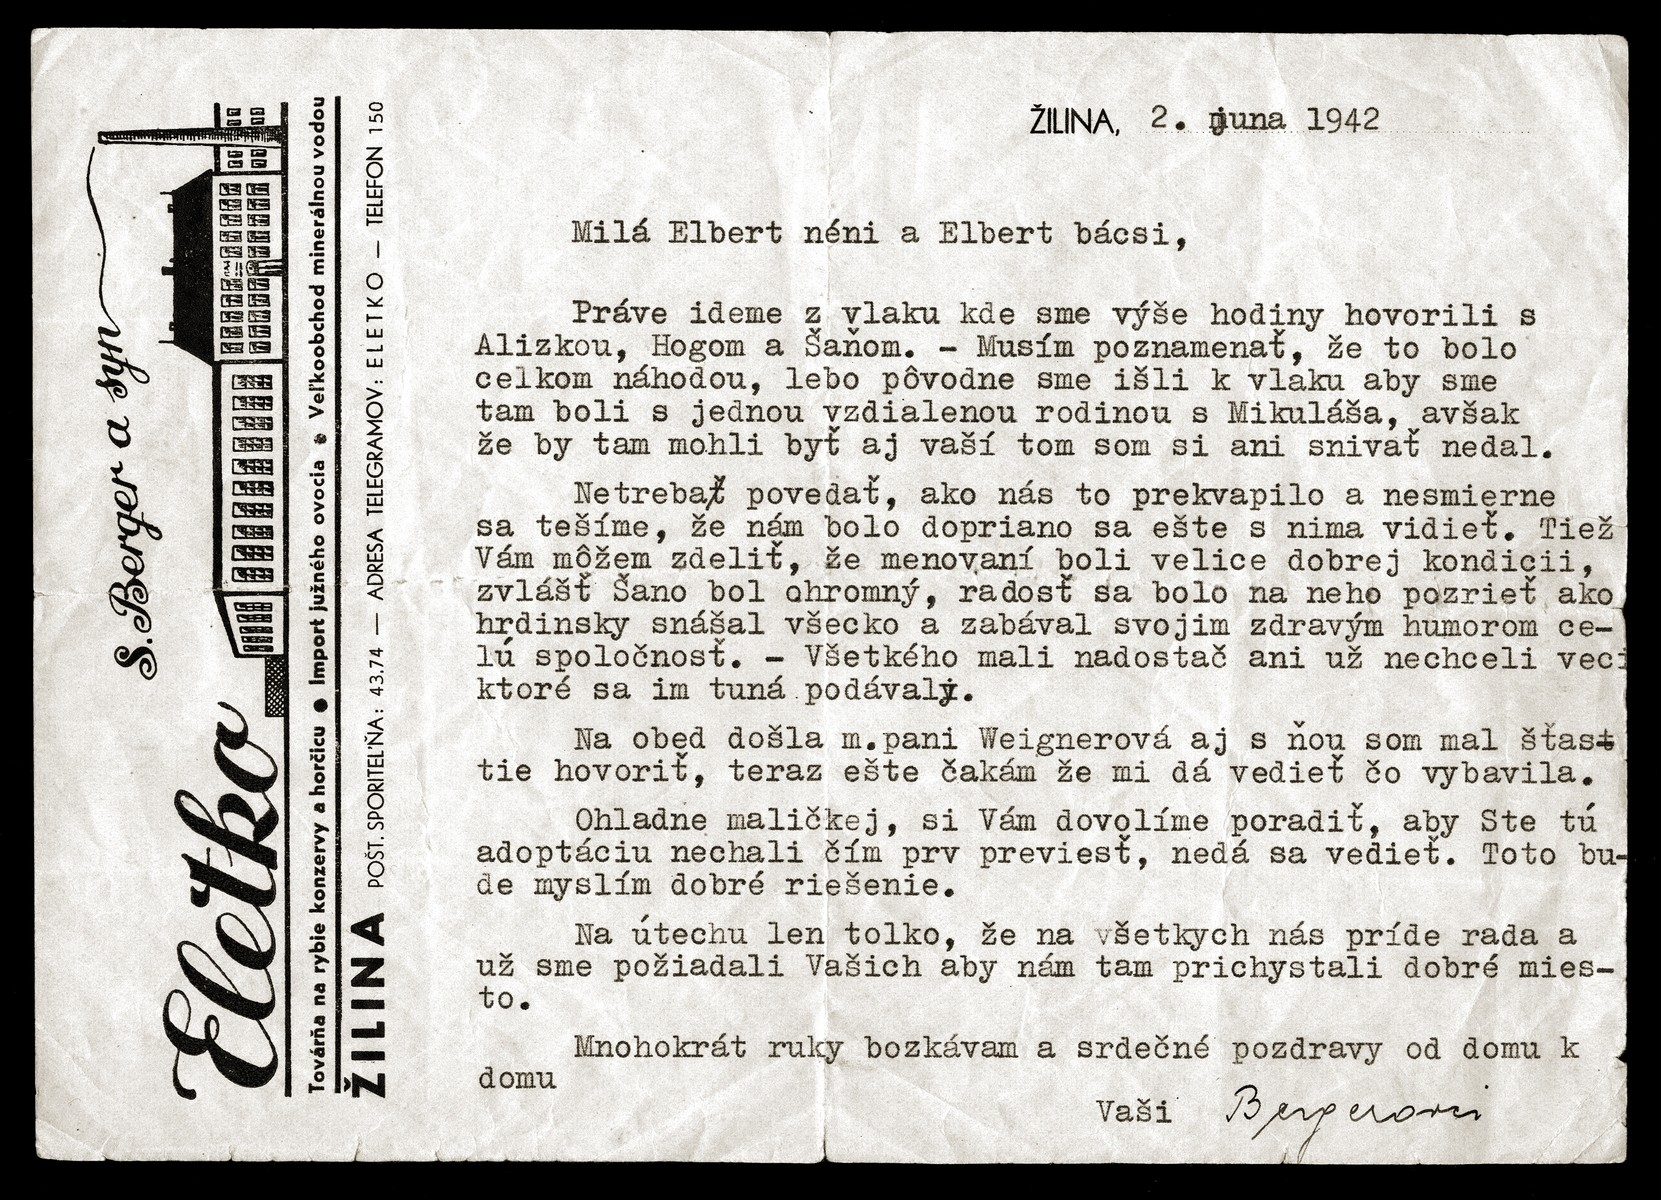 A letter written by Vasi Berger, a friend of the Elberts to Gejza and Melania Elbert about the deportation of their children.    Berger writes that she saw Alexander, Hugo and Alice Elbert at the train station and were very happy to have the opportunity to see them once more before the train left for Poland and the camps.  She advises Gejza and Melania to give Denise up for adoption to a Christian family in order to save her life.